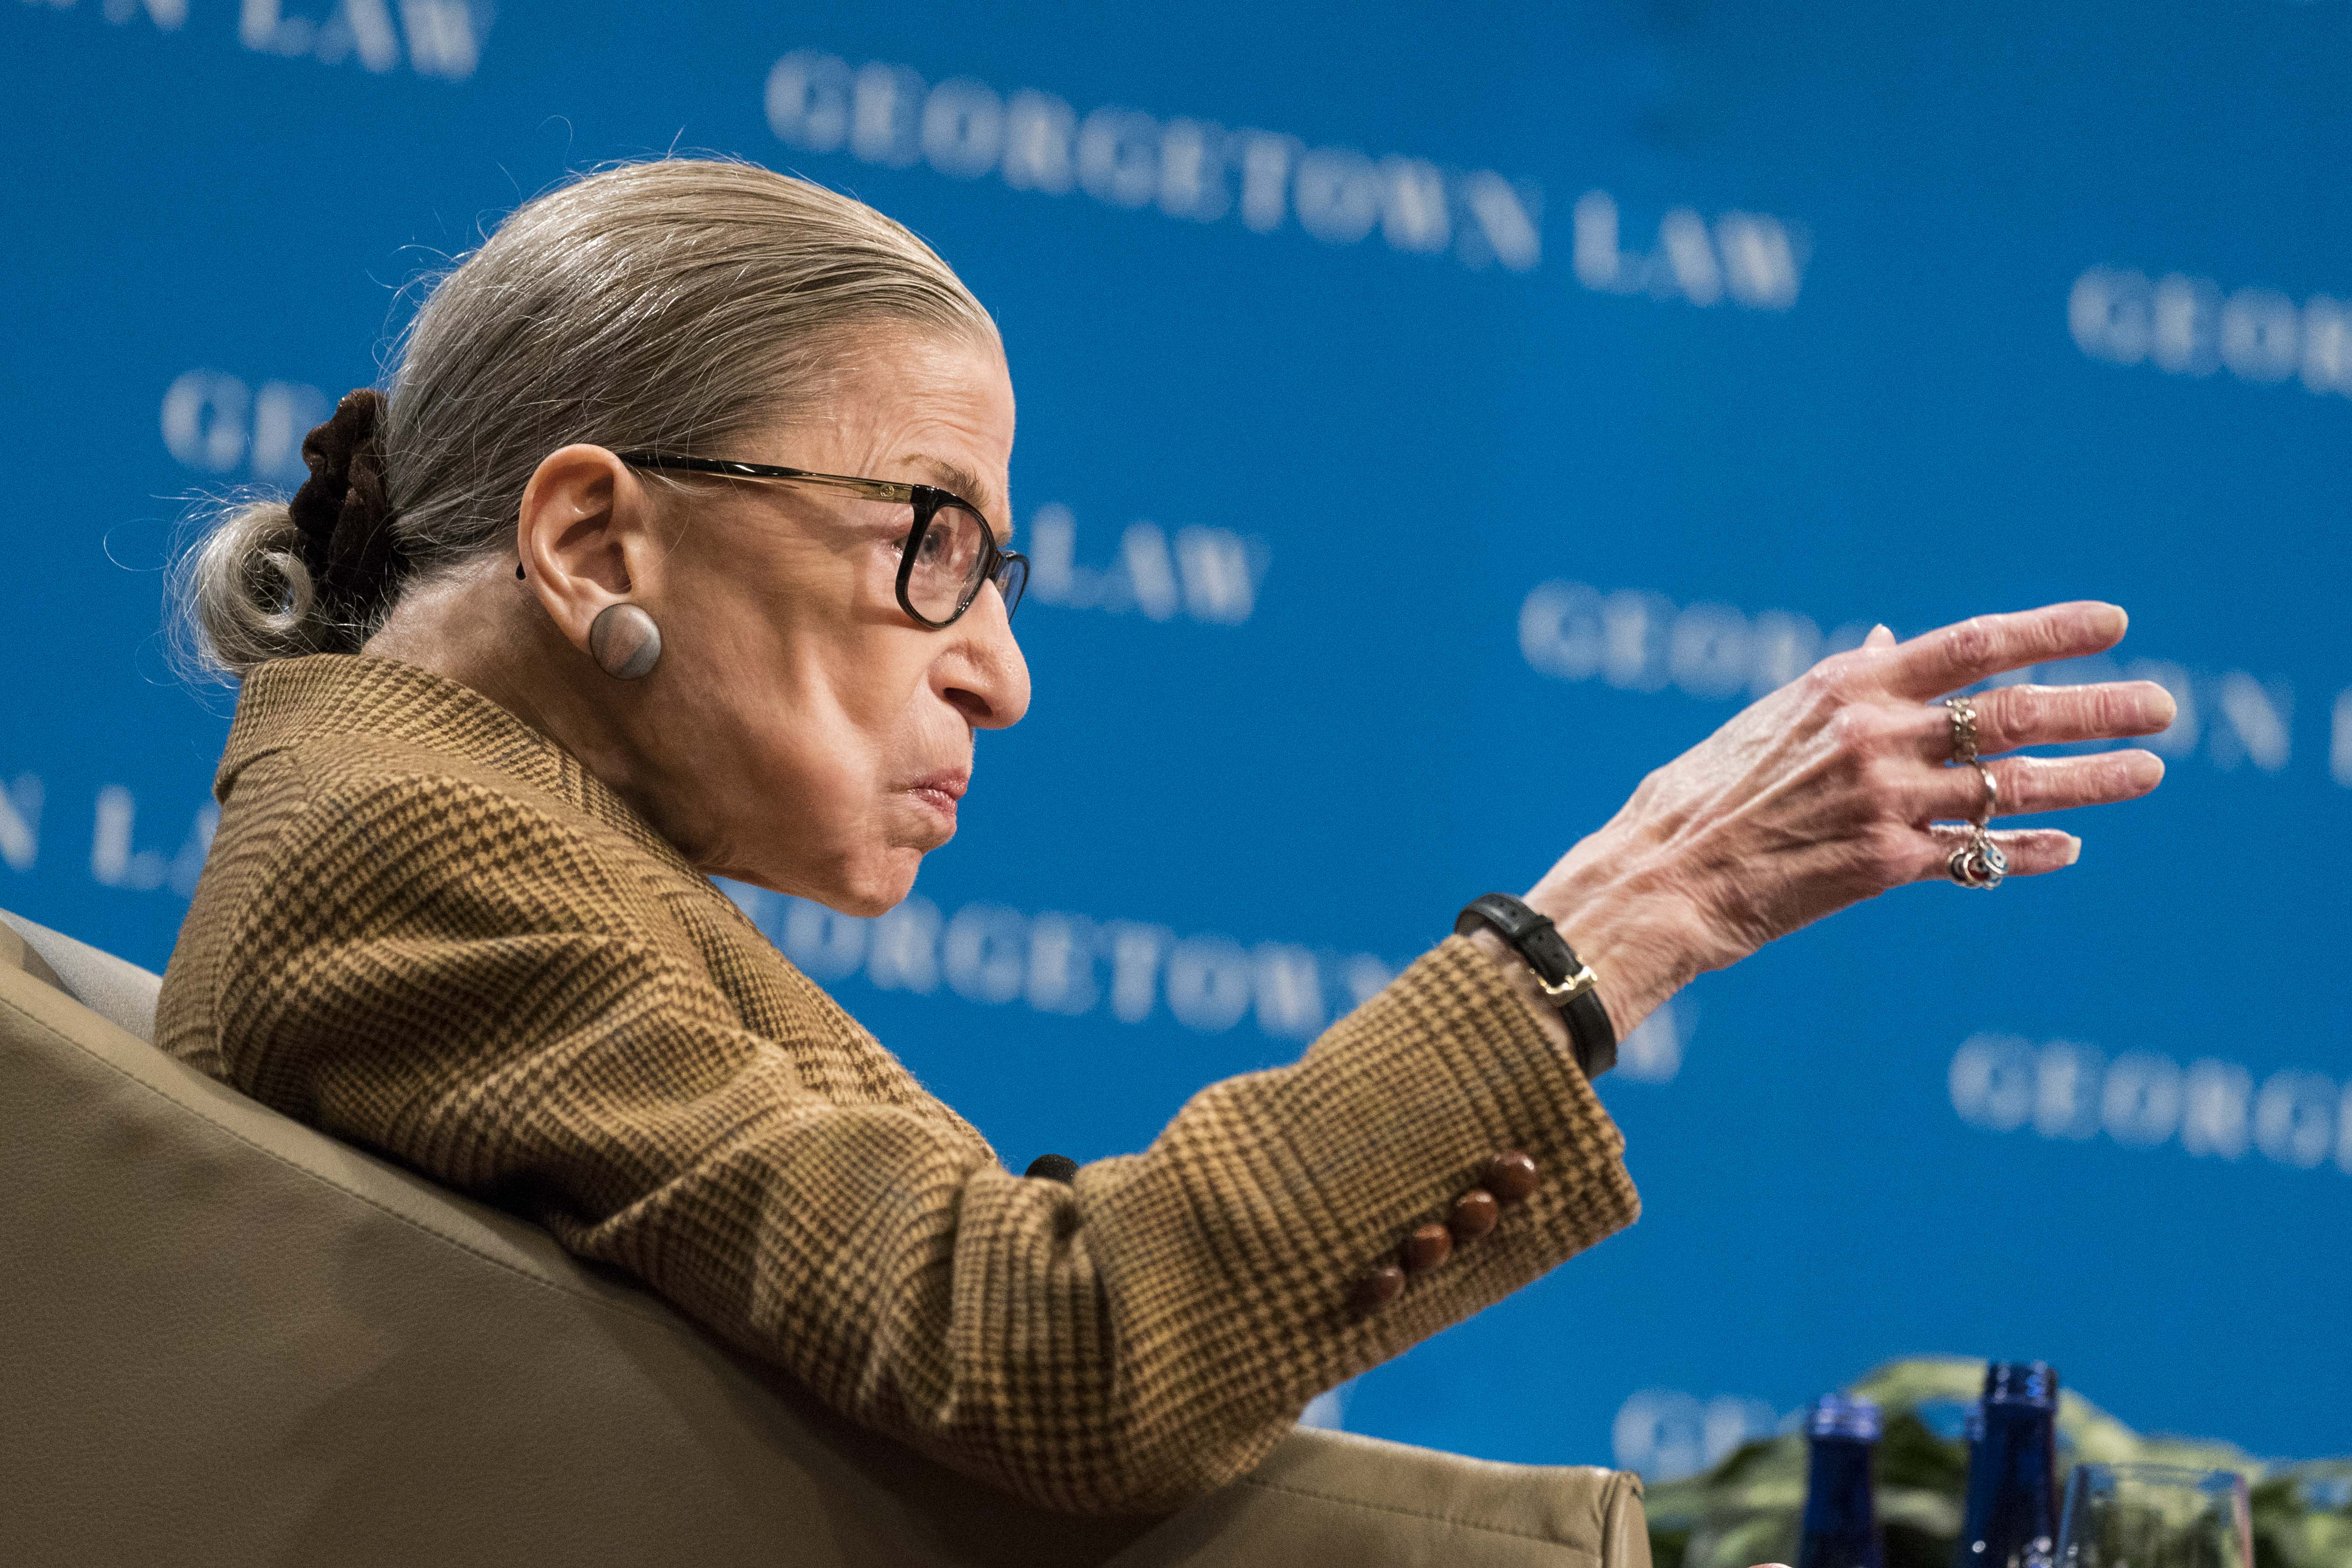 Justice Ruth Bader Ginsburg at the Georgetown University Law Center on February 10, 2020. (Sarah Silbiger/Getty Images)